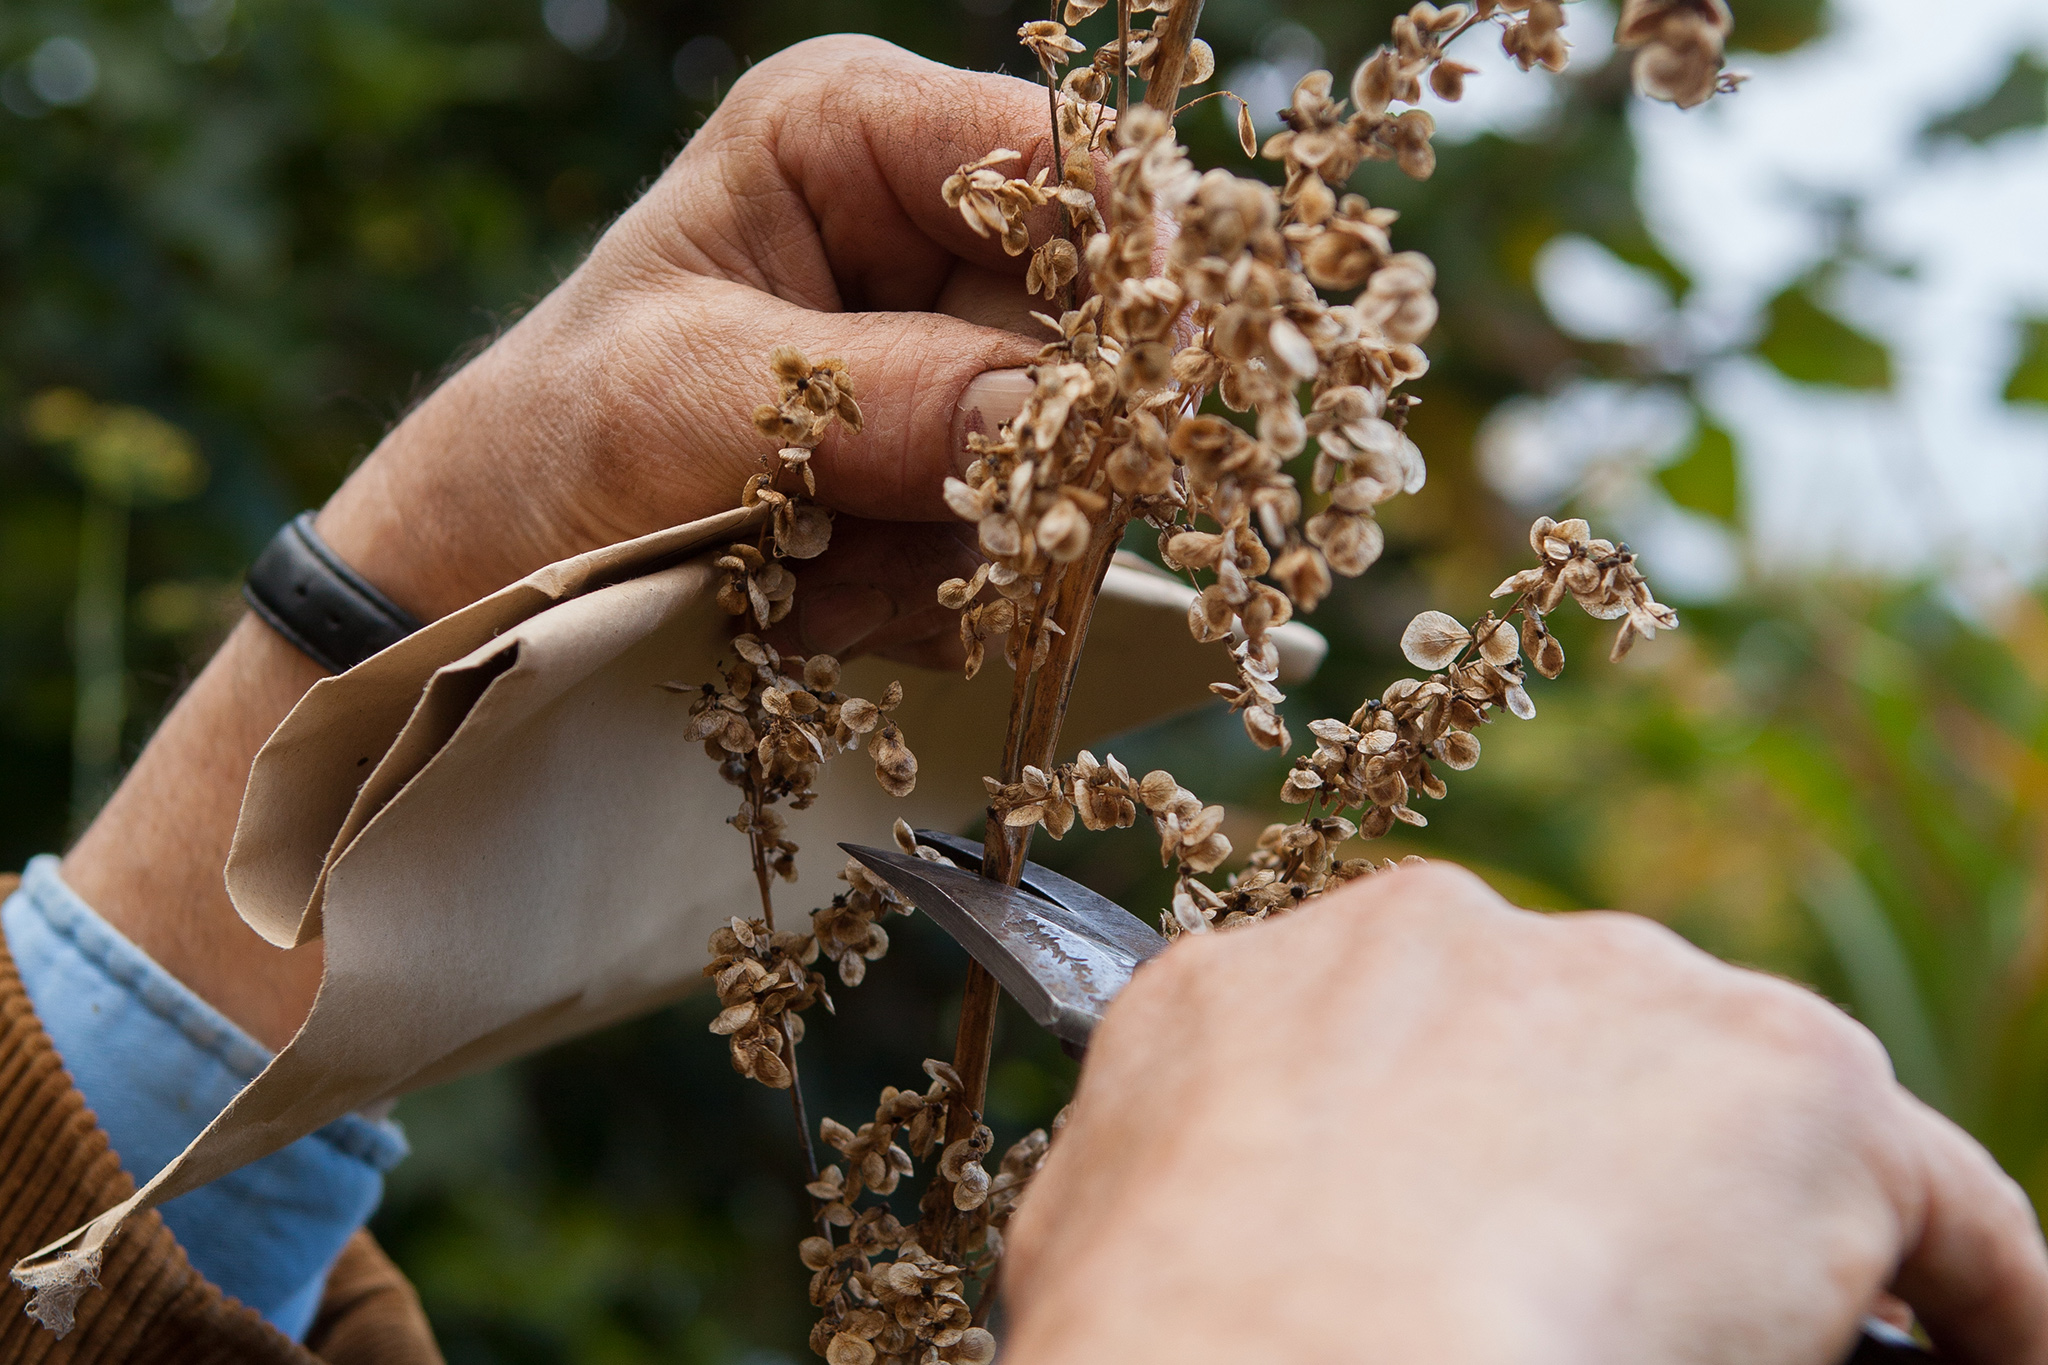 How to Collect Atriplex Seeds